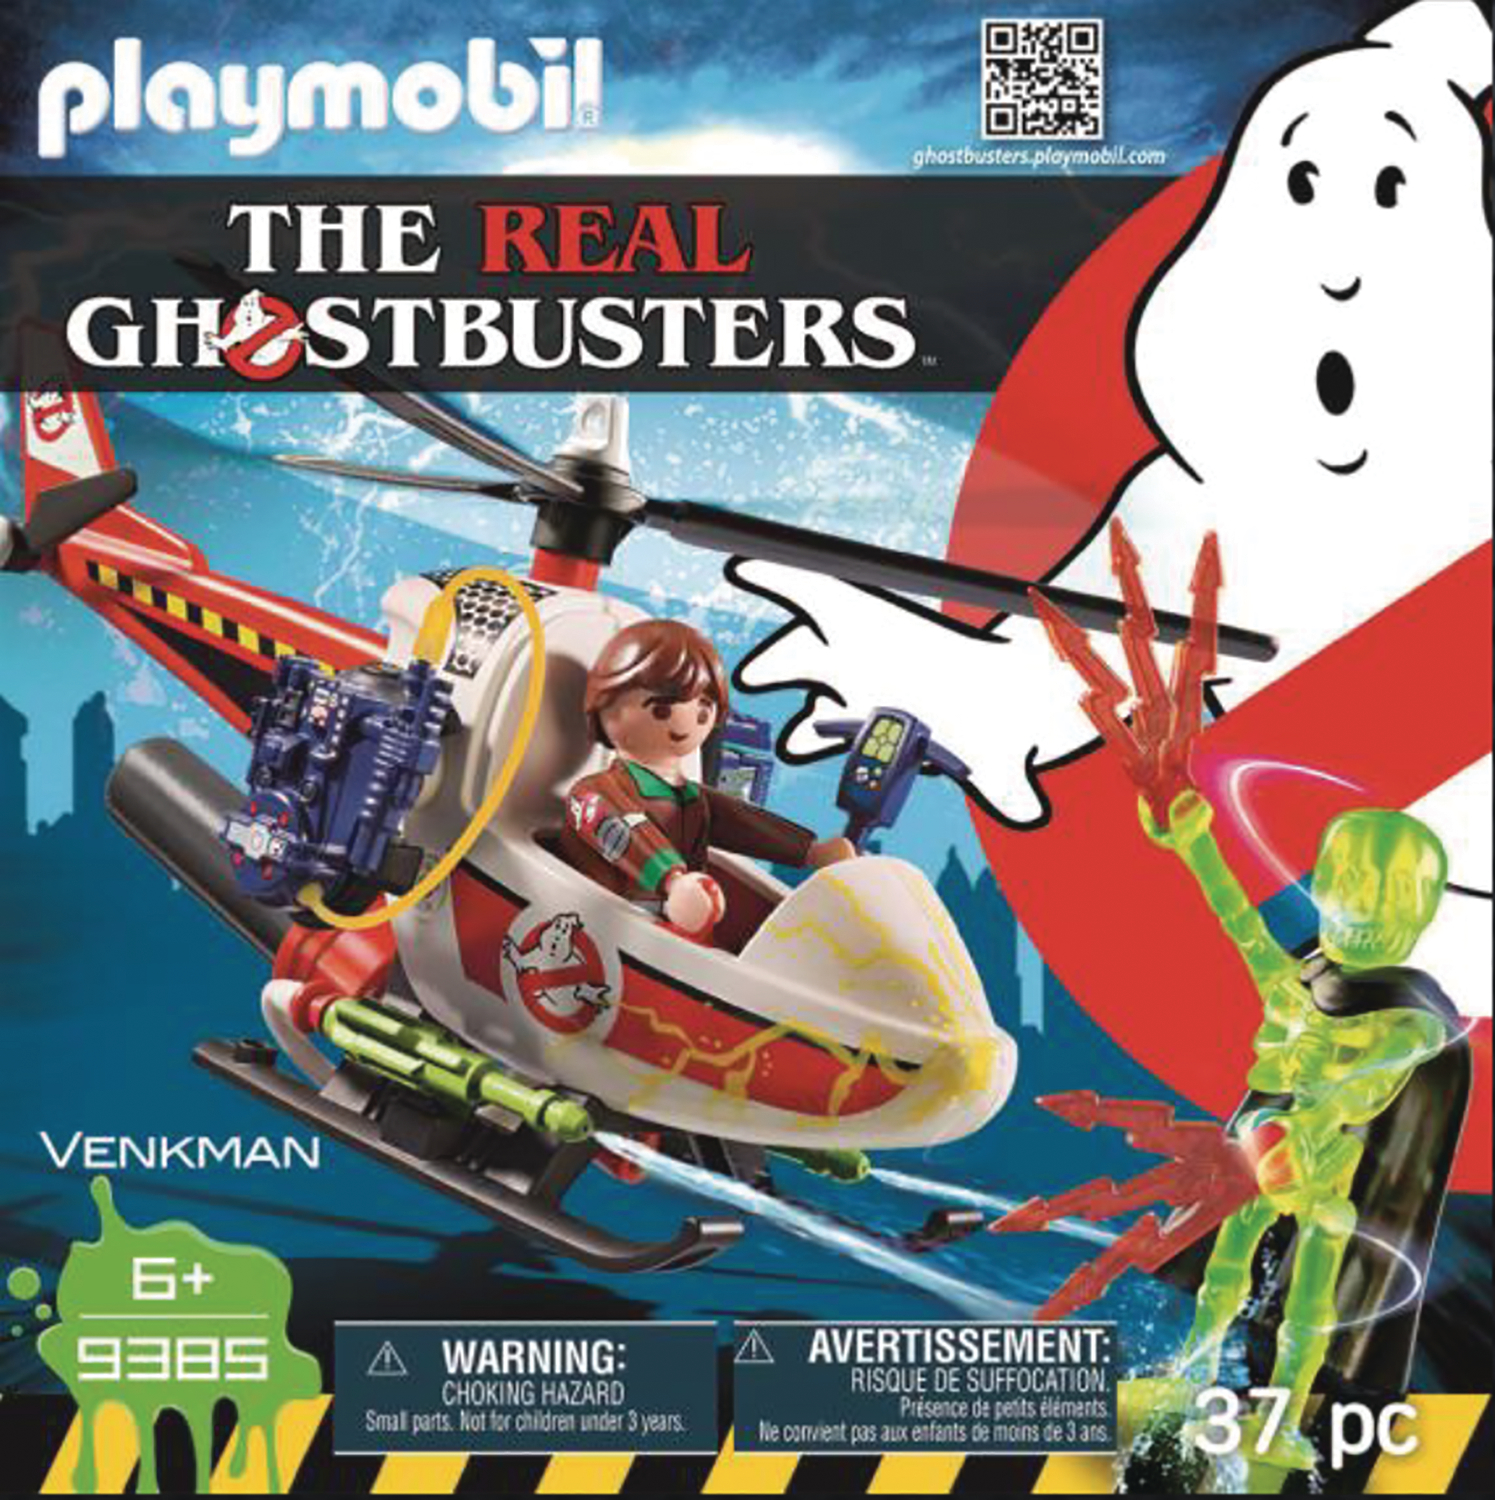 PLAYMOBIL REAL GHOSTBUSTERS VENKMAN W/HELICOPTER AF SET (DEC